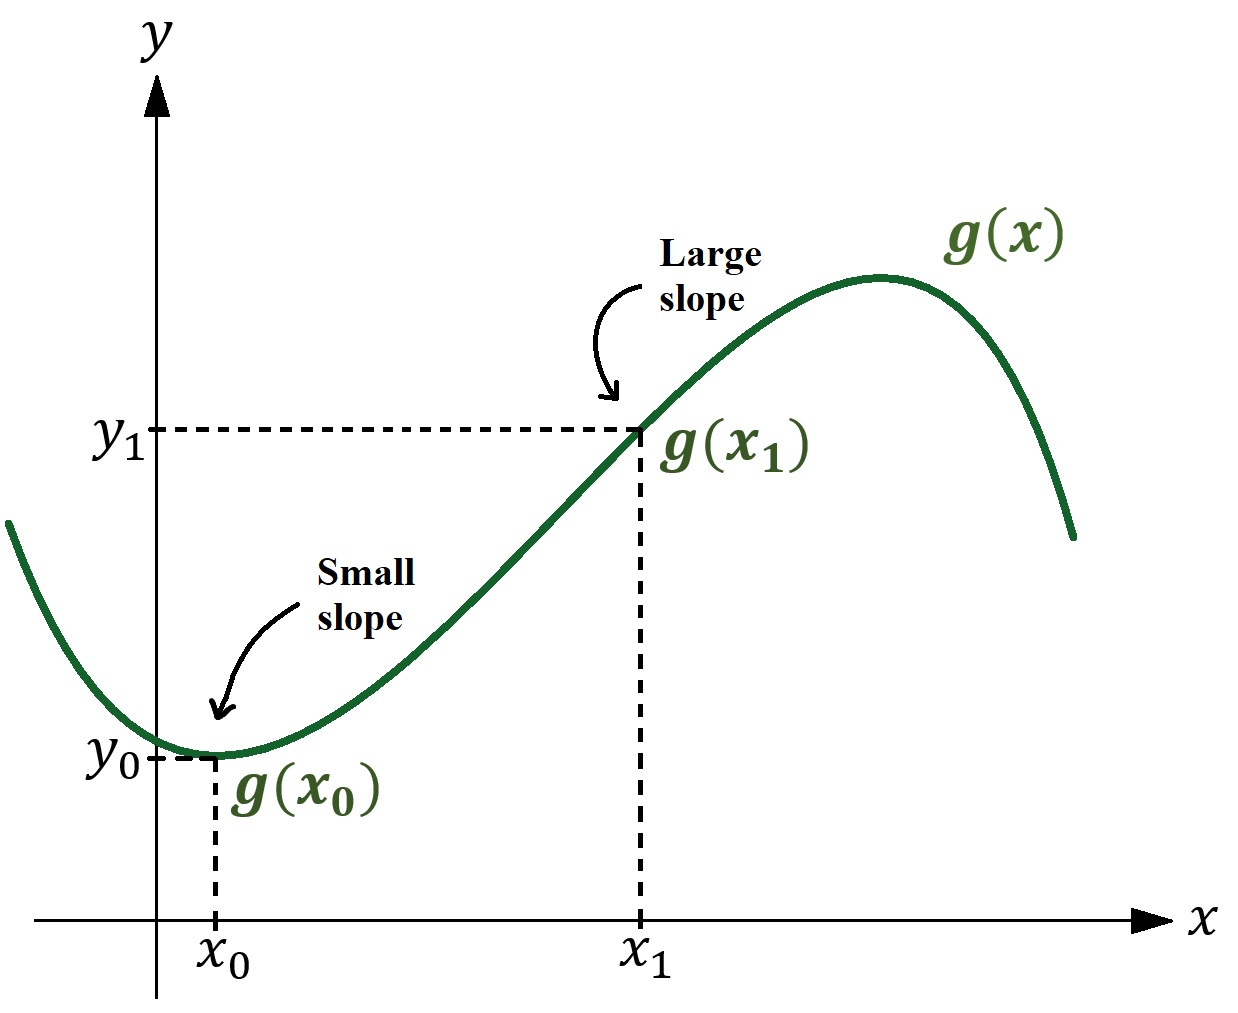 Figure 1: Above, I have graphed some arbitrary function \(g(x)\). At the point \(g(x_0)\), the slope or steepness of the curve is very small (indeed, it is zero) whereas at the point \(g(x_1)\) the slope of the curve is comparitevely large.